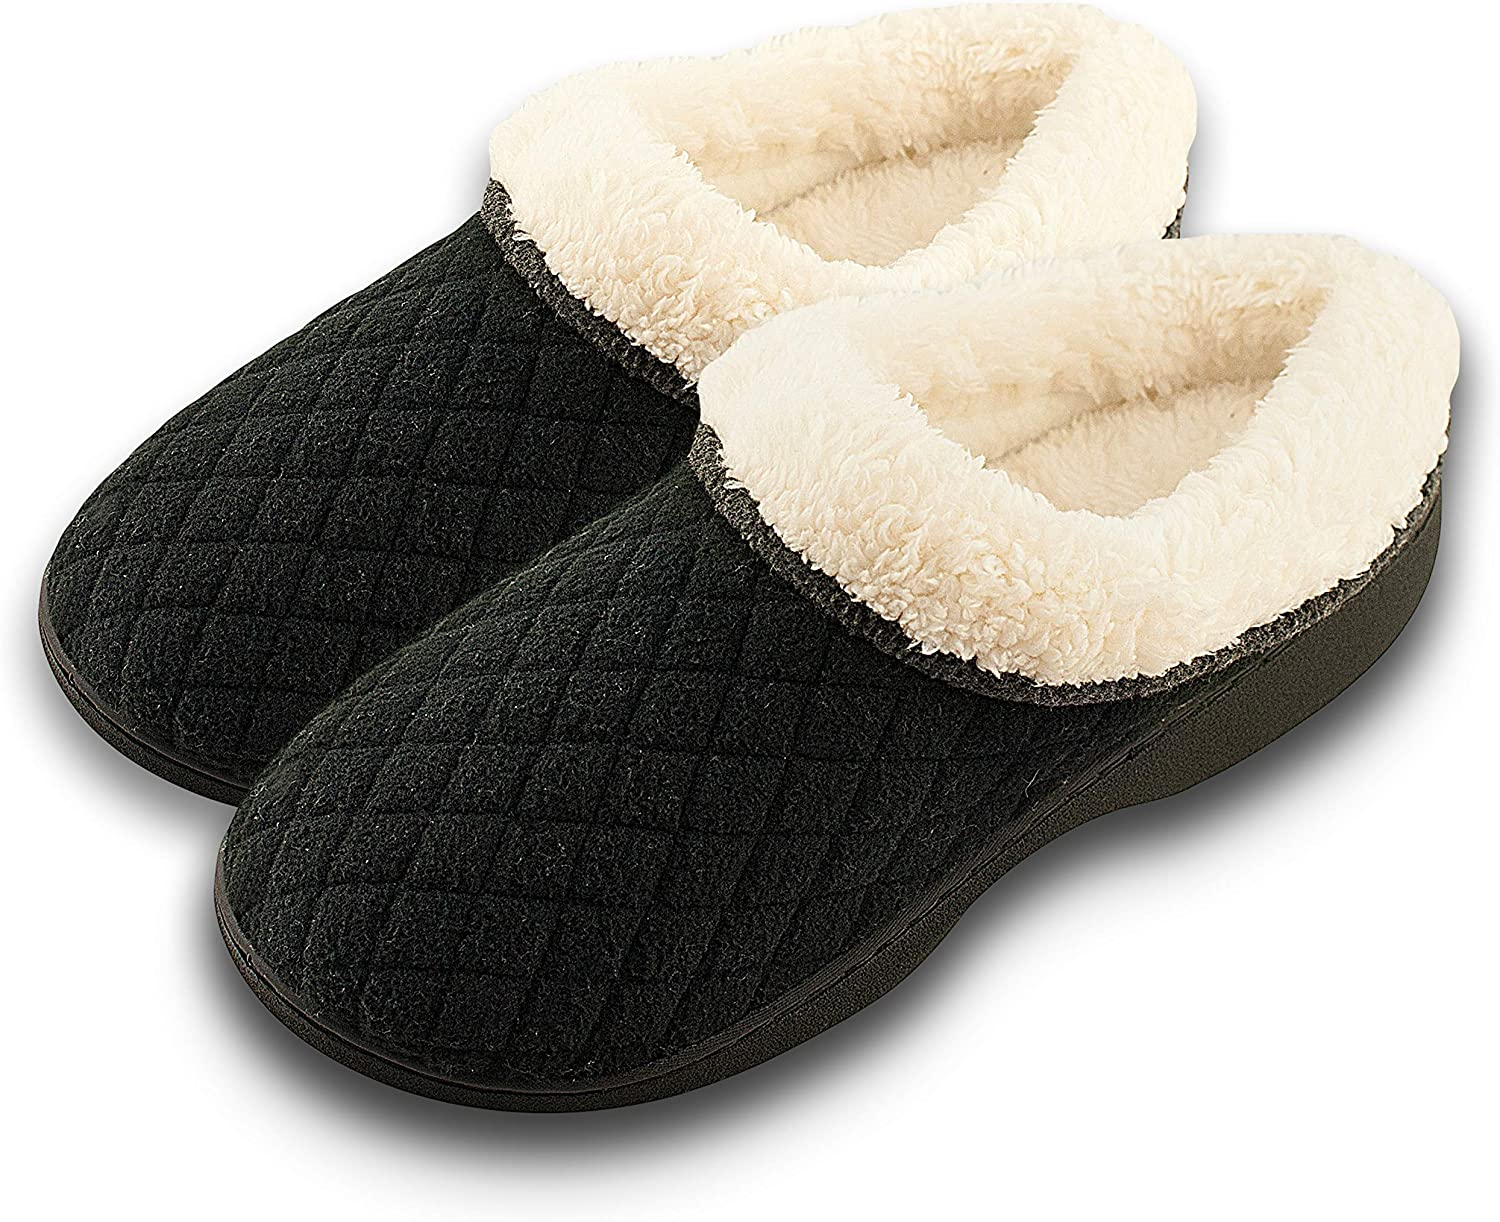 Roxoni Quilted & Stitched Memory Foam Slippers Warm Soft Fleece Lined Terry Clog Slip-On shoes, Anti-Slip Rubber Waterproof Sole Black